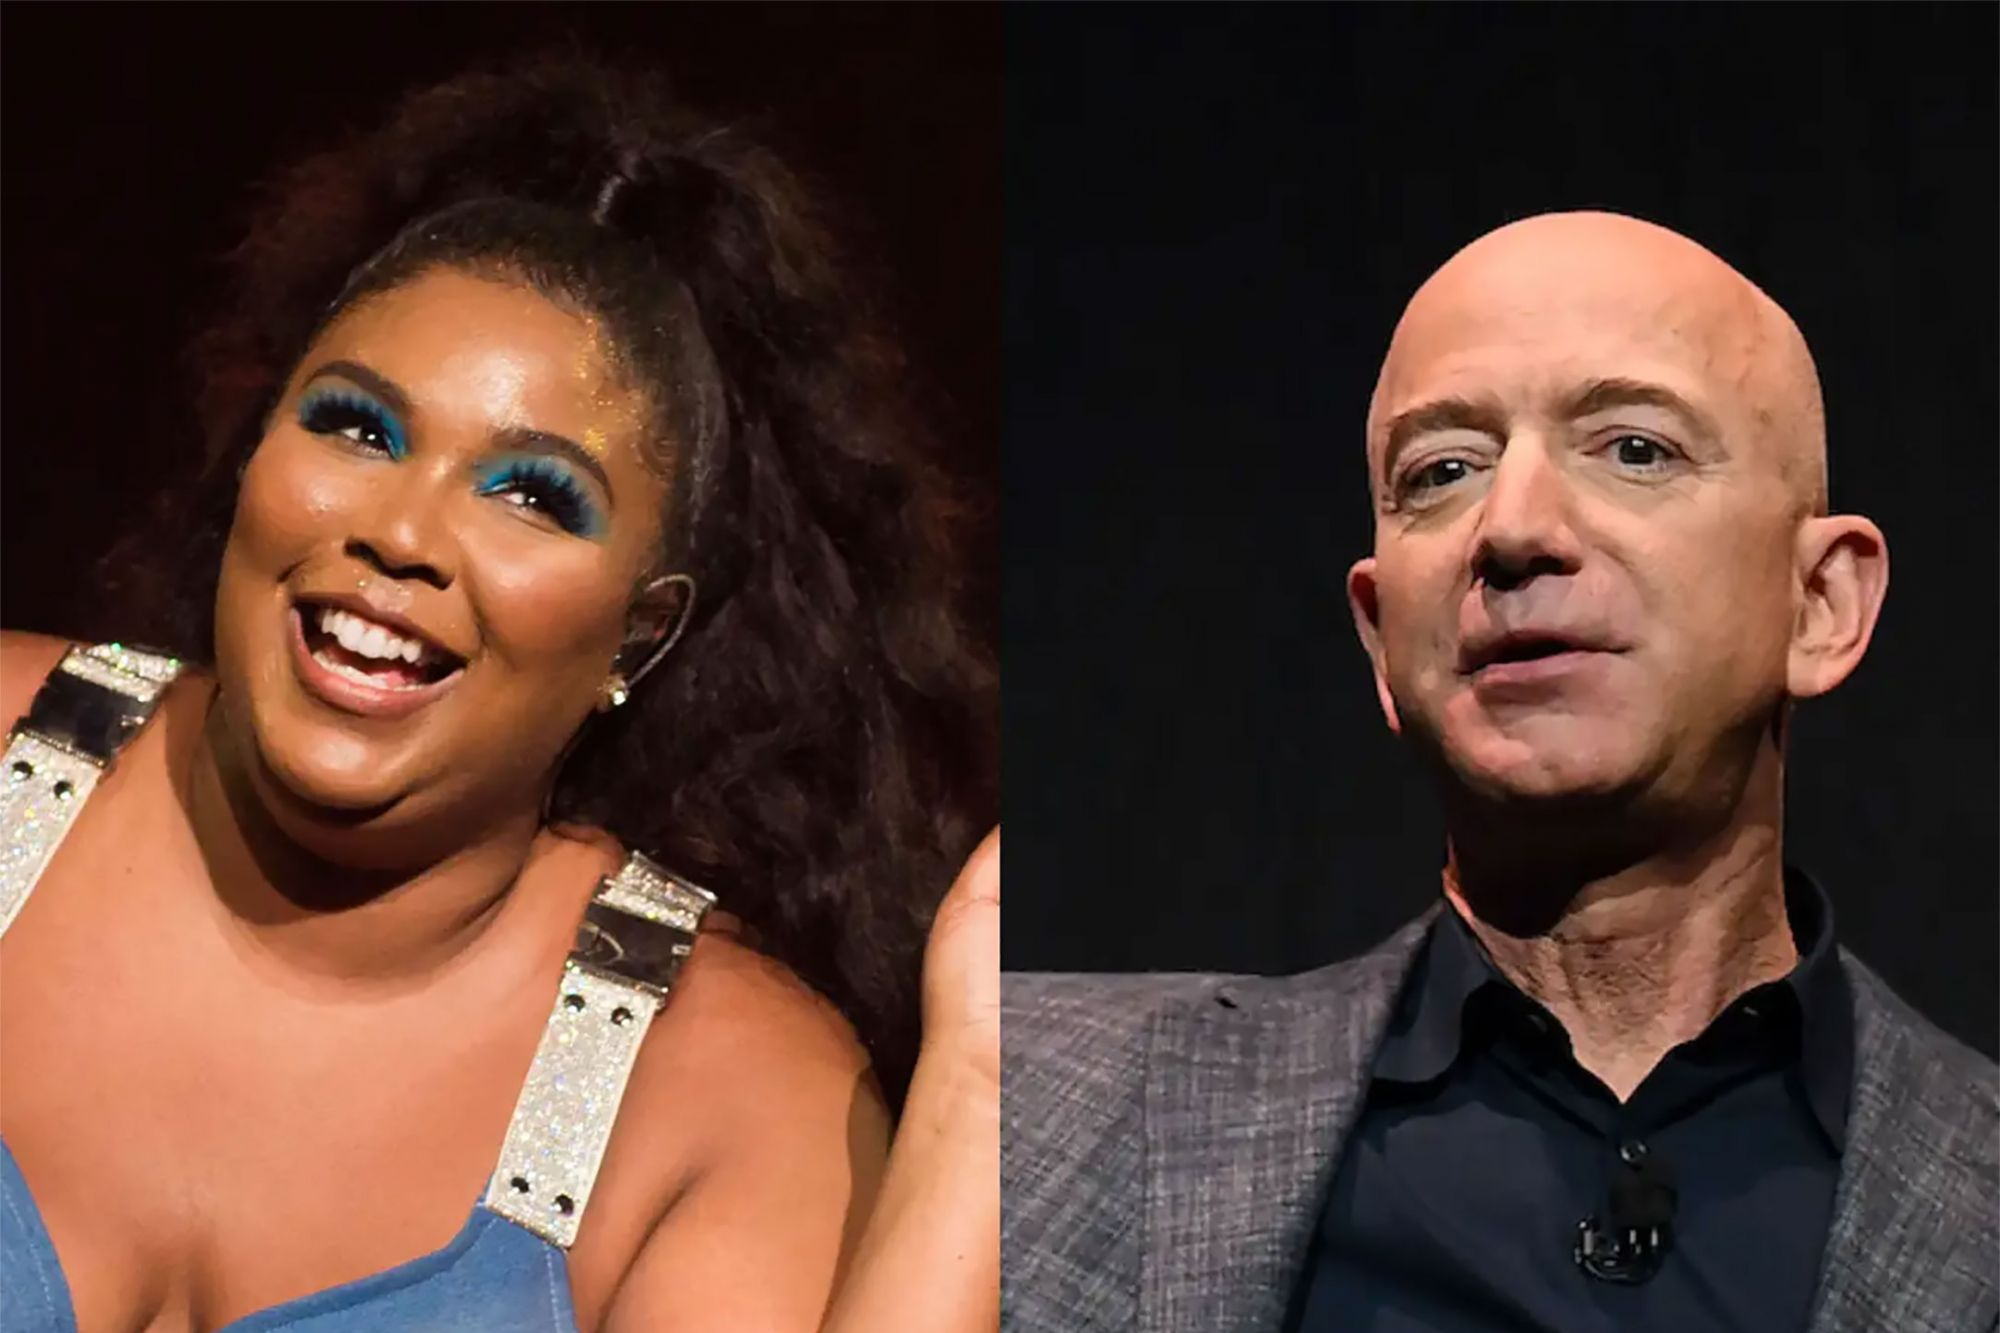 Jeff bezos and lizzo hung out during the super bowl in